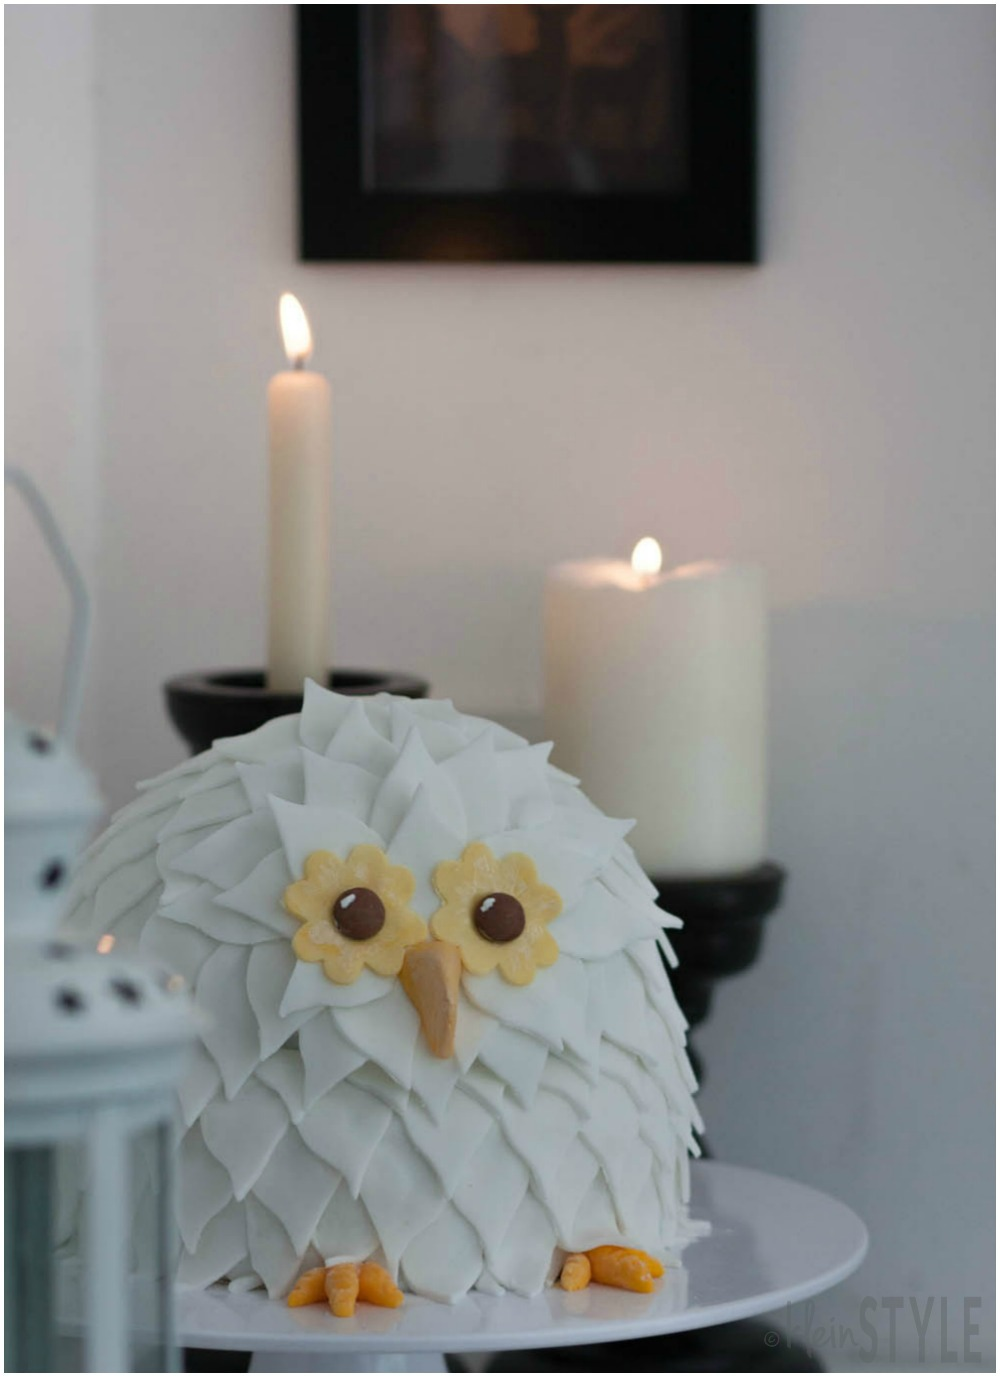 Harry Potter kids Party owl hedwig cake ©kleinstyle.com